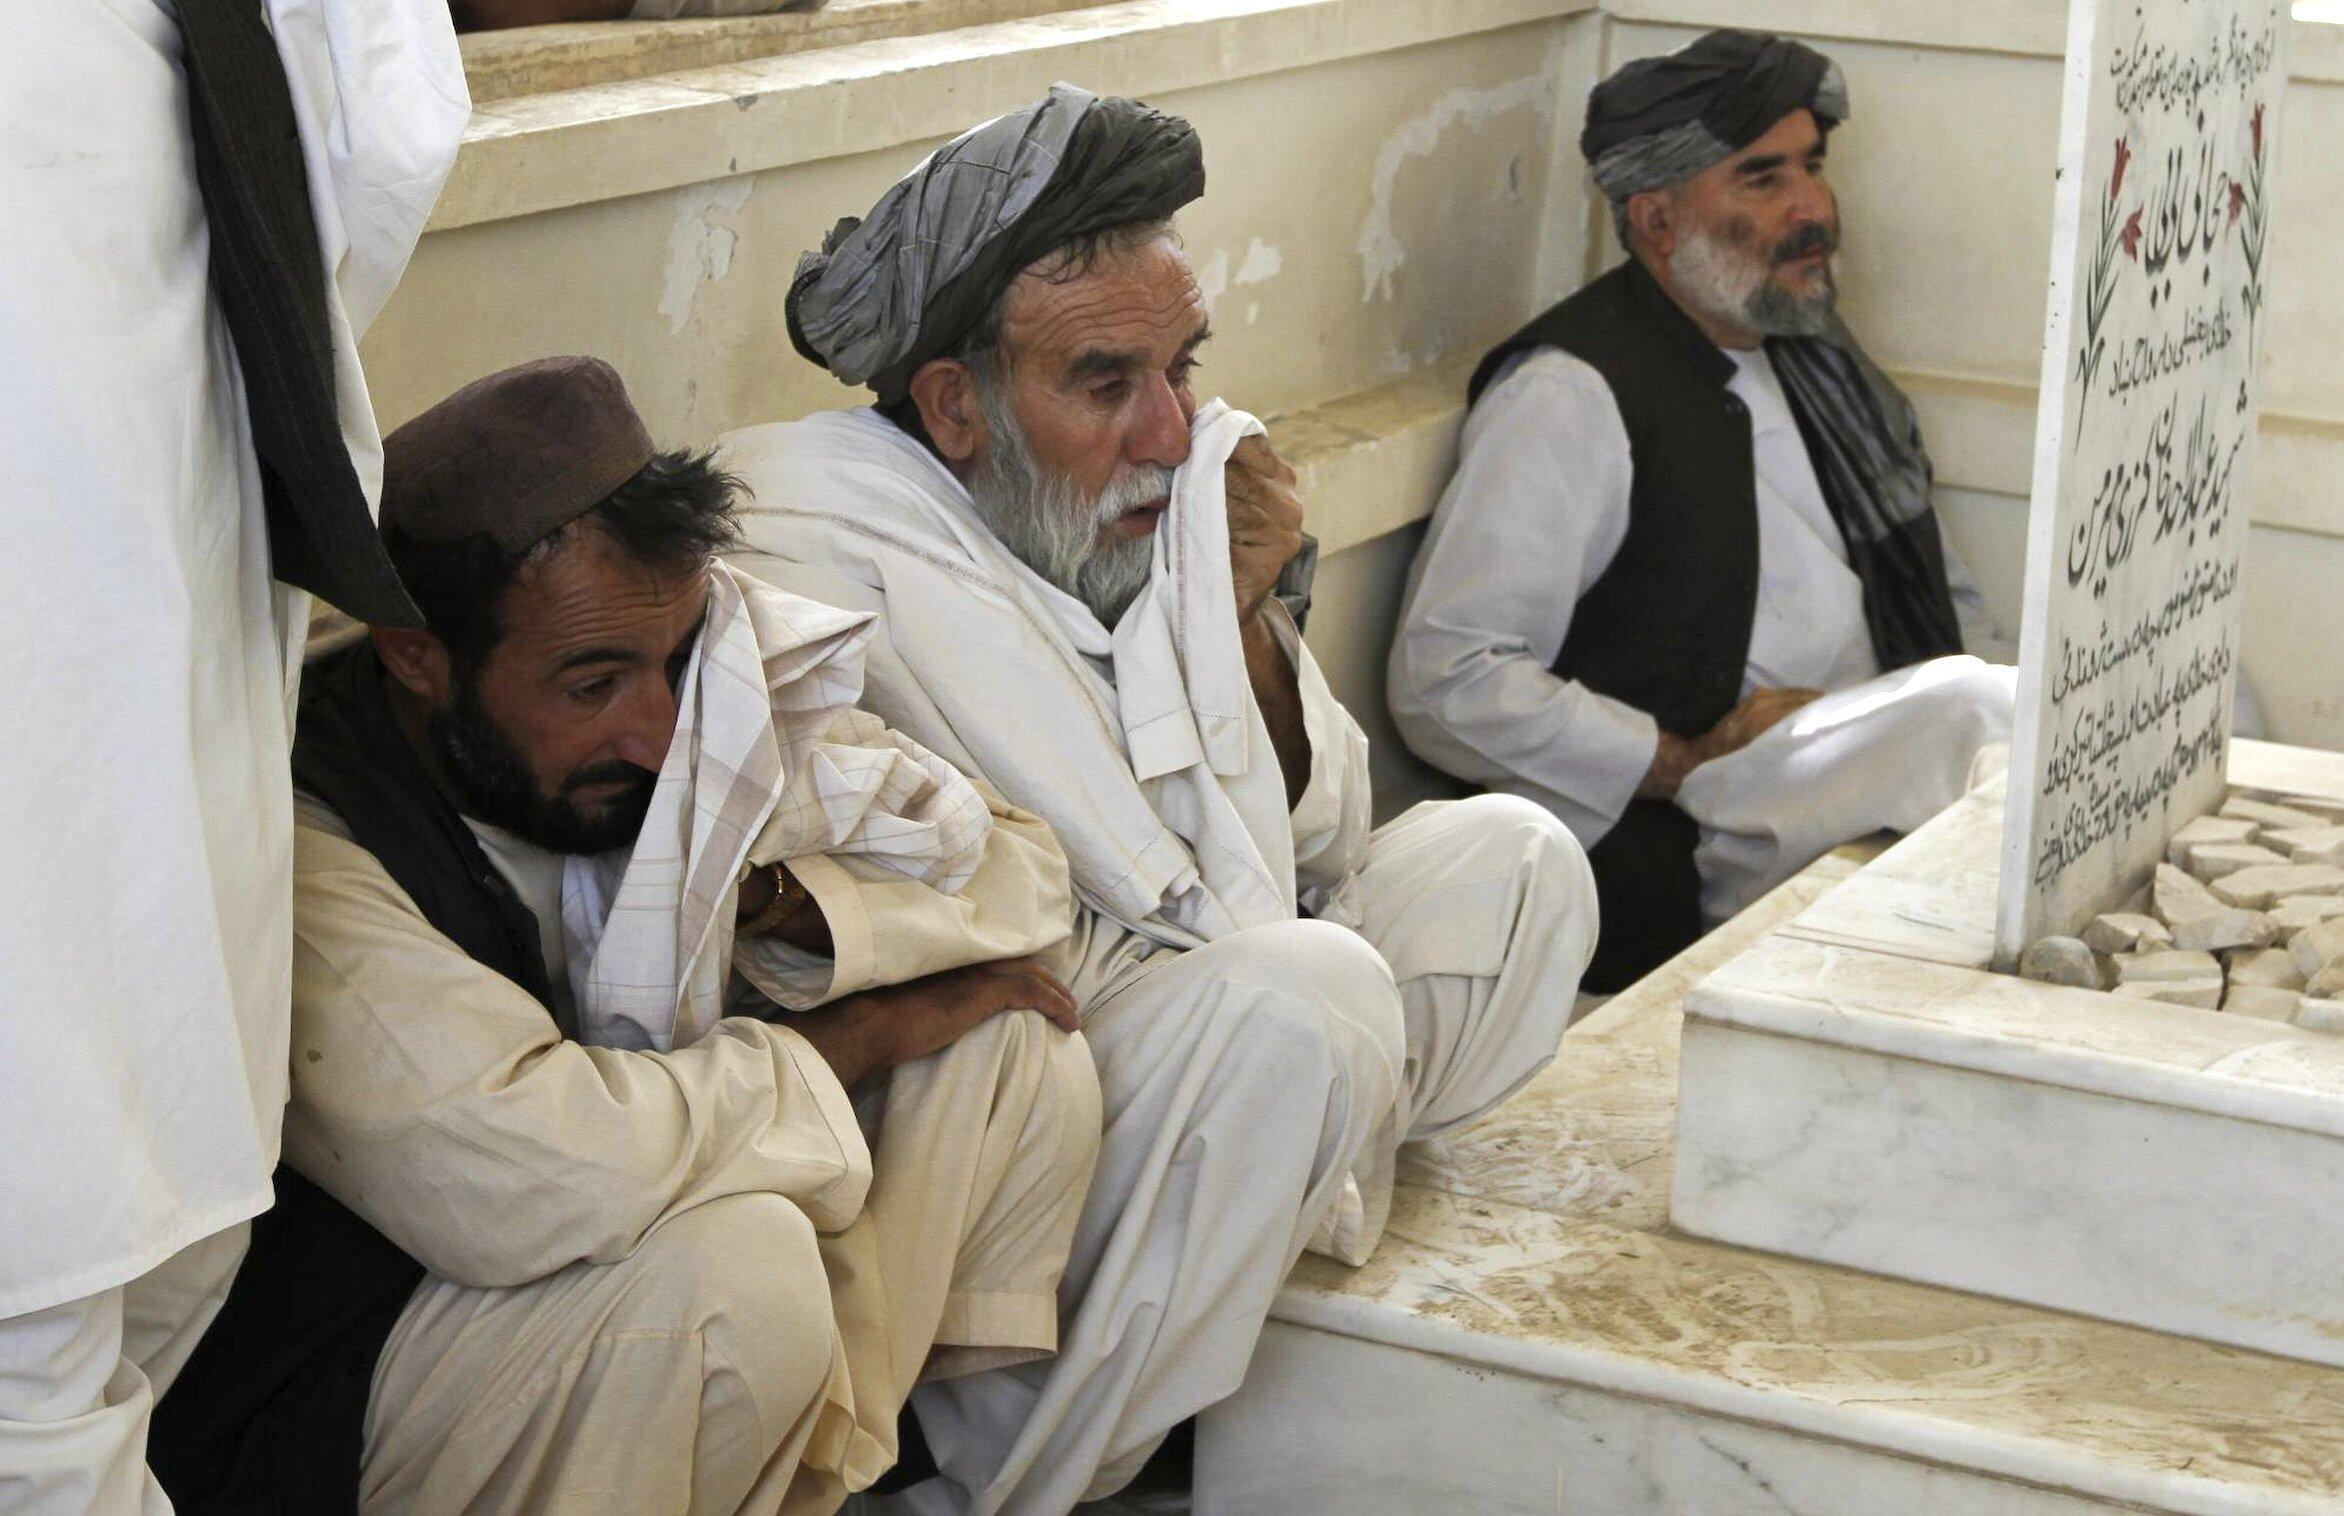 Afghans mourn at a grave yard after burying Ahmad Wali Karzai, President Hamid Karzai's brother who was killed by a bodyguard on Tuesday, in Kandahar province 13 July 2011